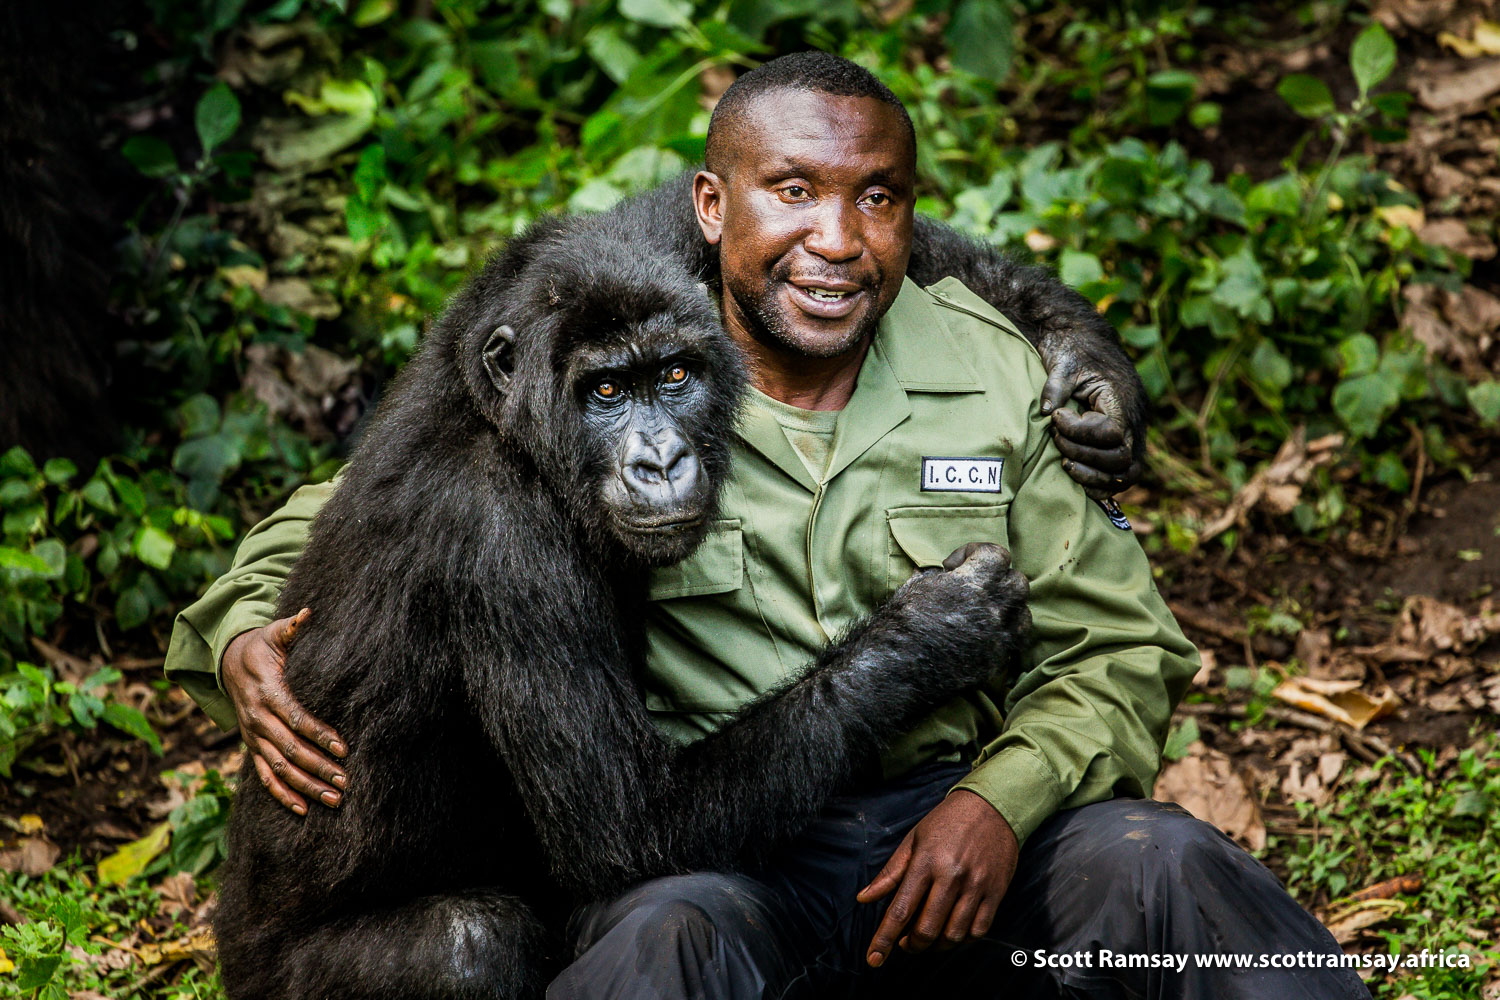 Andre Bauma and orphaned gorilla at Virunga's Senkwekwe Gorilla Sanctuary, where Andre and fellow rangers look after gorillas whose families have been murdered by poachers or soldiers.